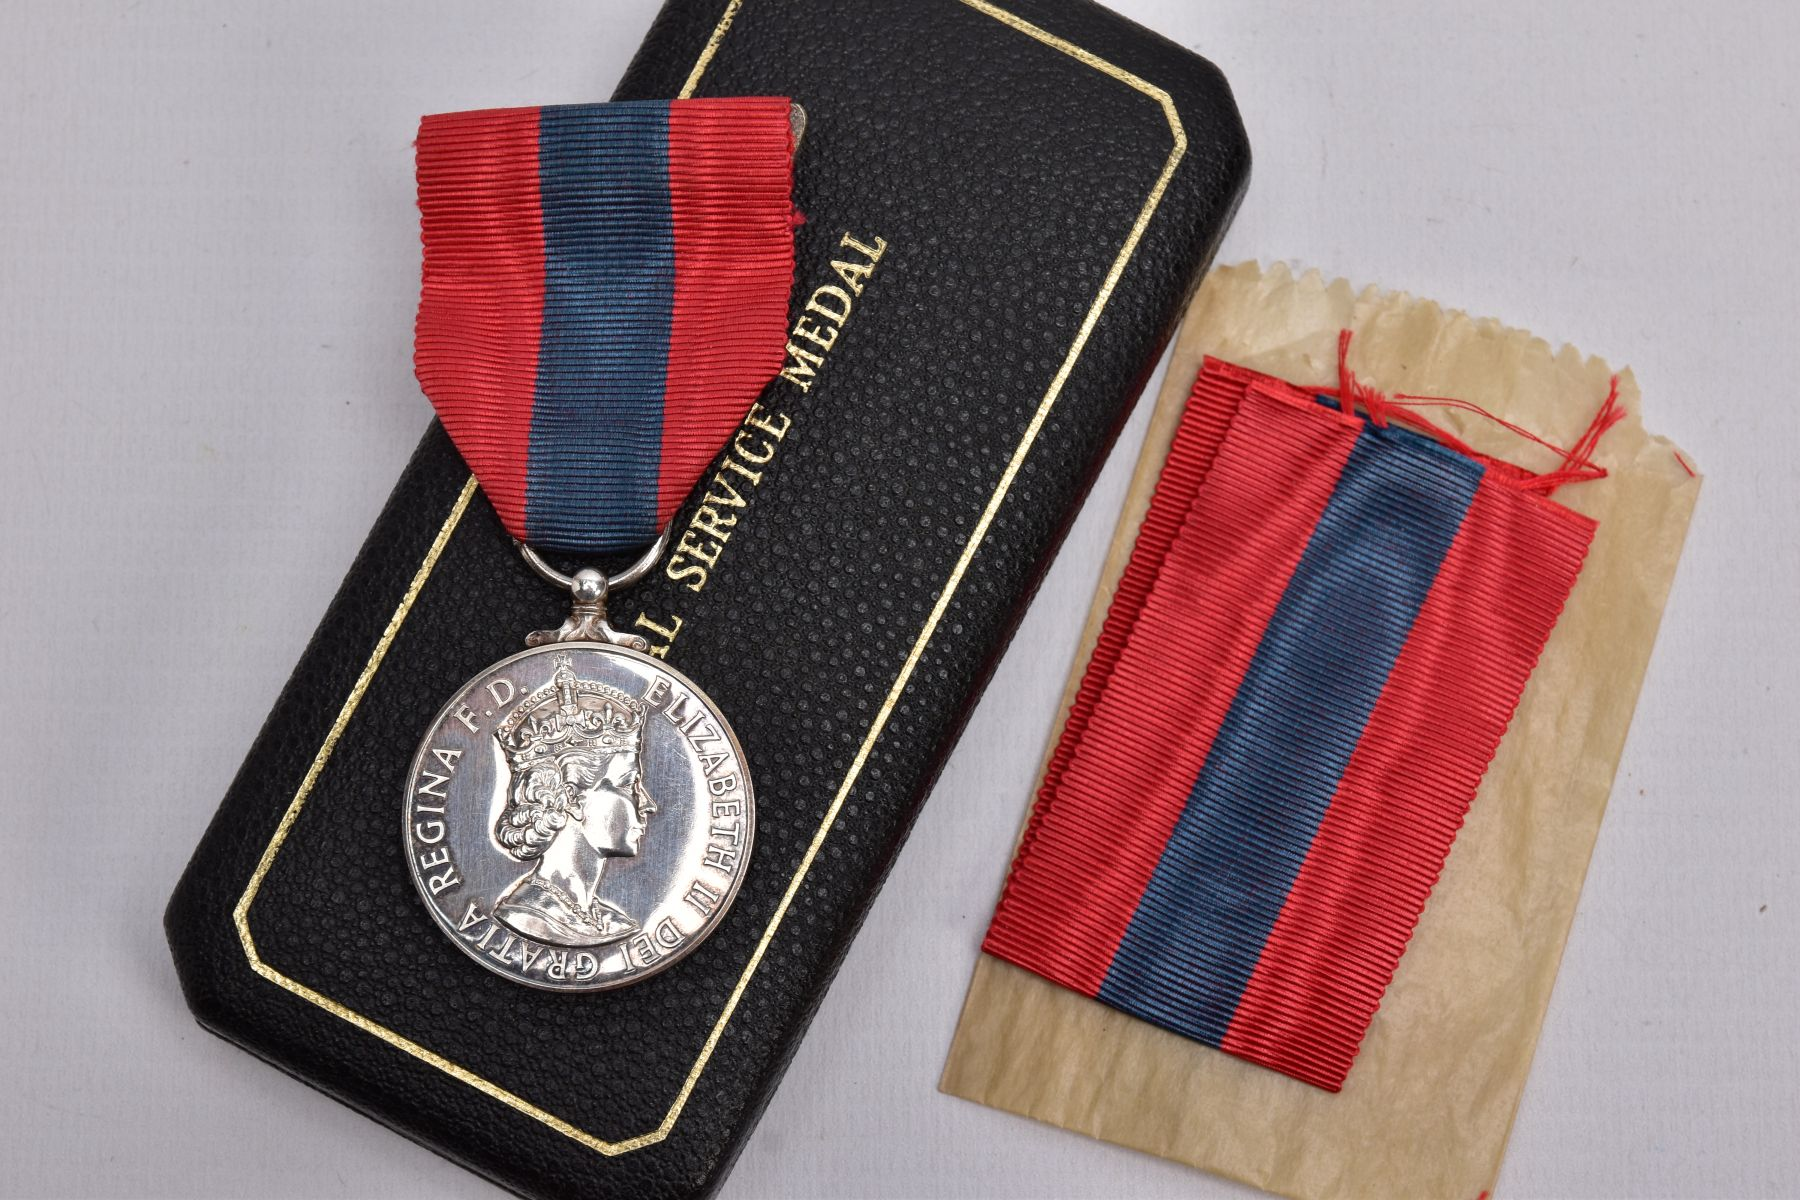 A BOXED ROYAL MINT IMPERIAL SERVICE MEDAL named to Hubert Martin, ERII Dei-Gratia 1955 version